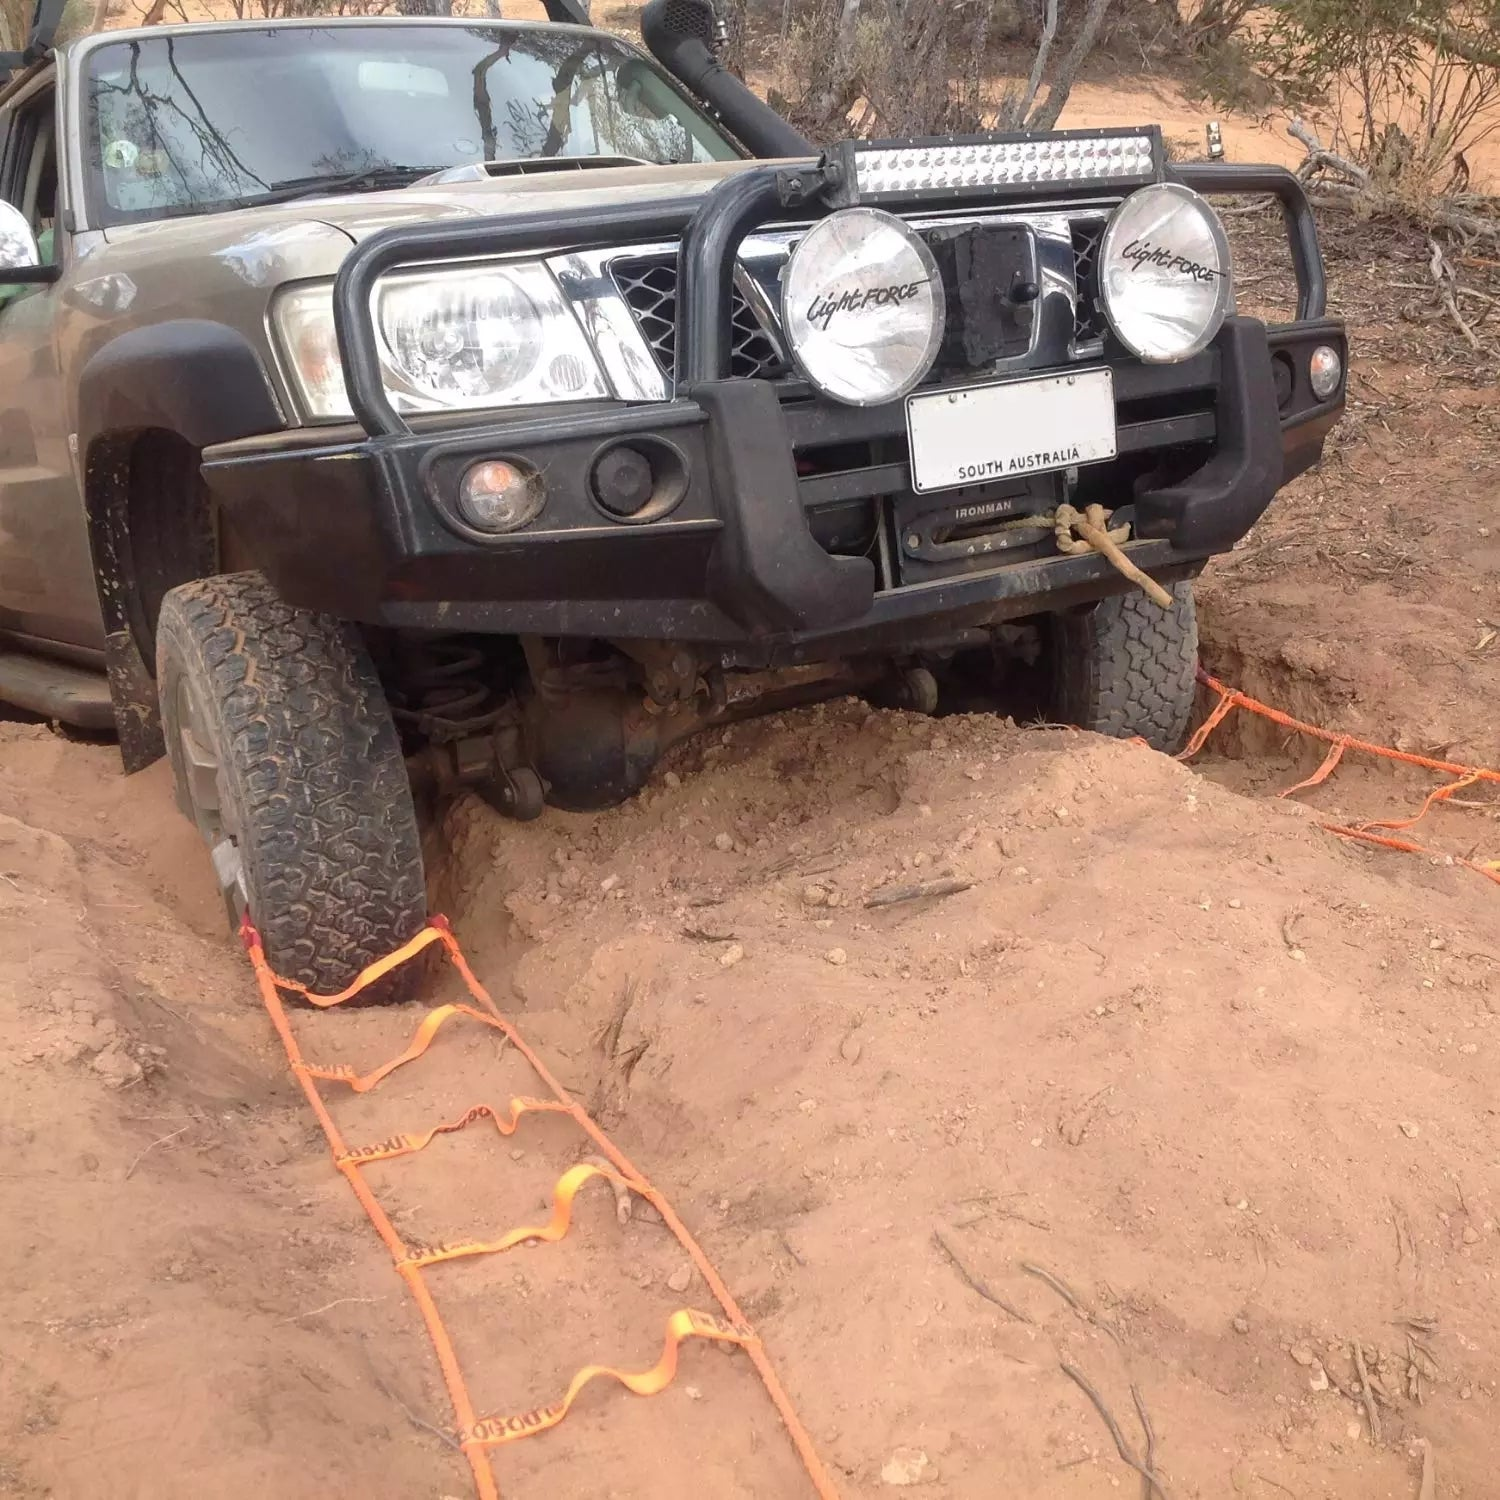 Bog Out' Turns Your Wheel Into a Winch, Gets You Unstuck From Anything